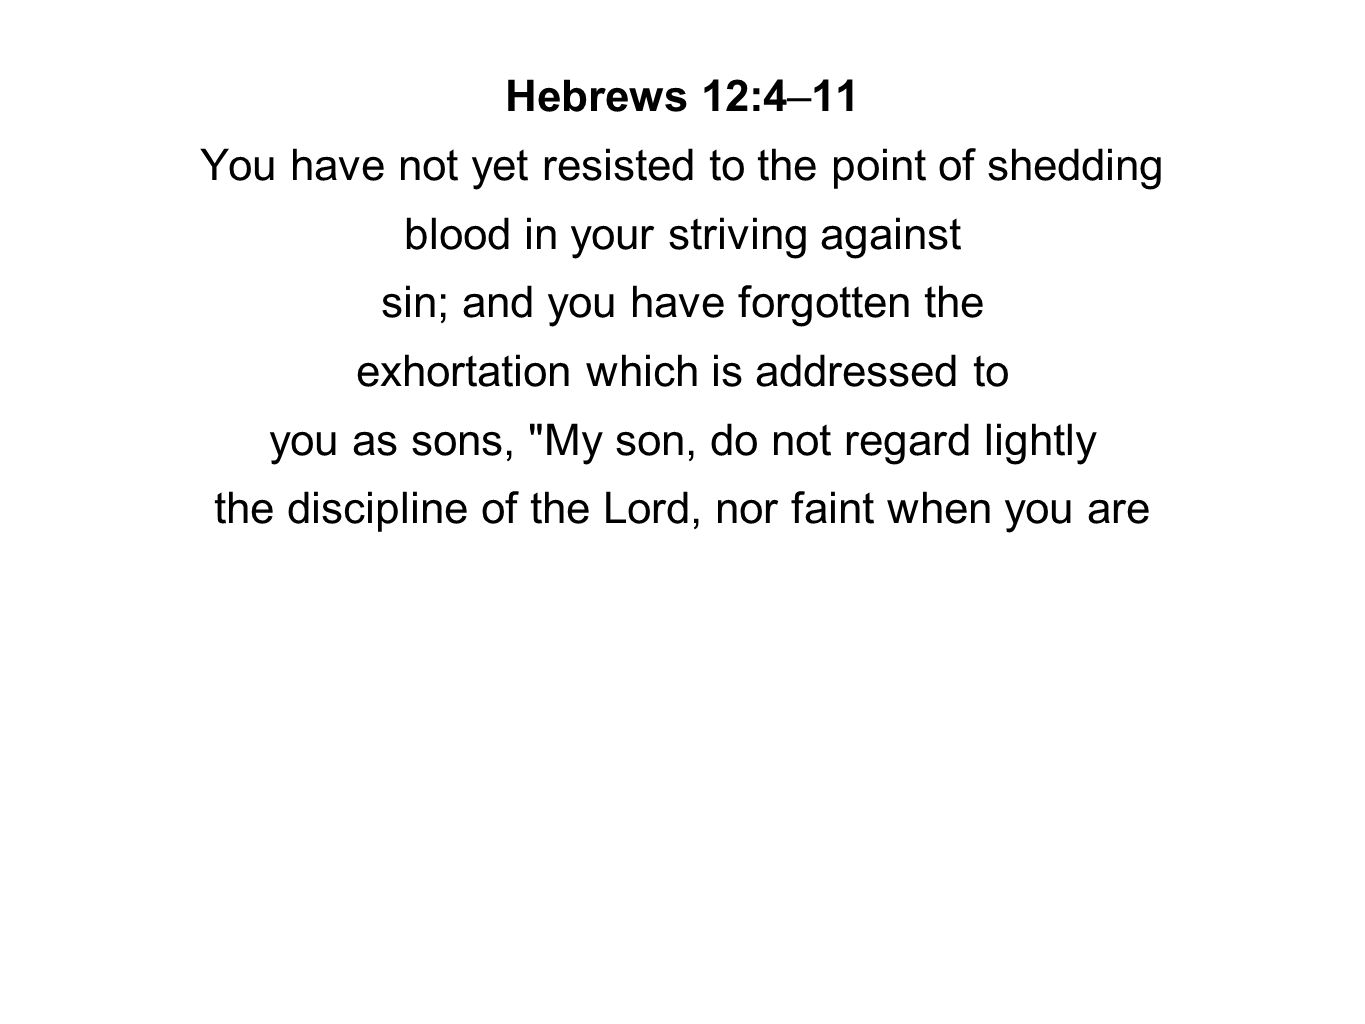 Hebrews 12:4–11 You have not yet resisted to the point of shedding blood in your striving against sin; and you have forgotten the exhortation which is addressed to you as sons, My son, do not regard lightly the discipline of the Lord, nor faint when you are